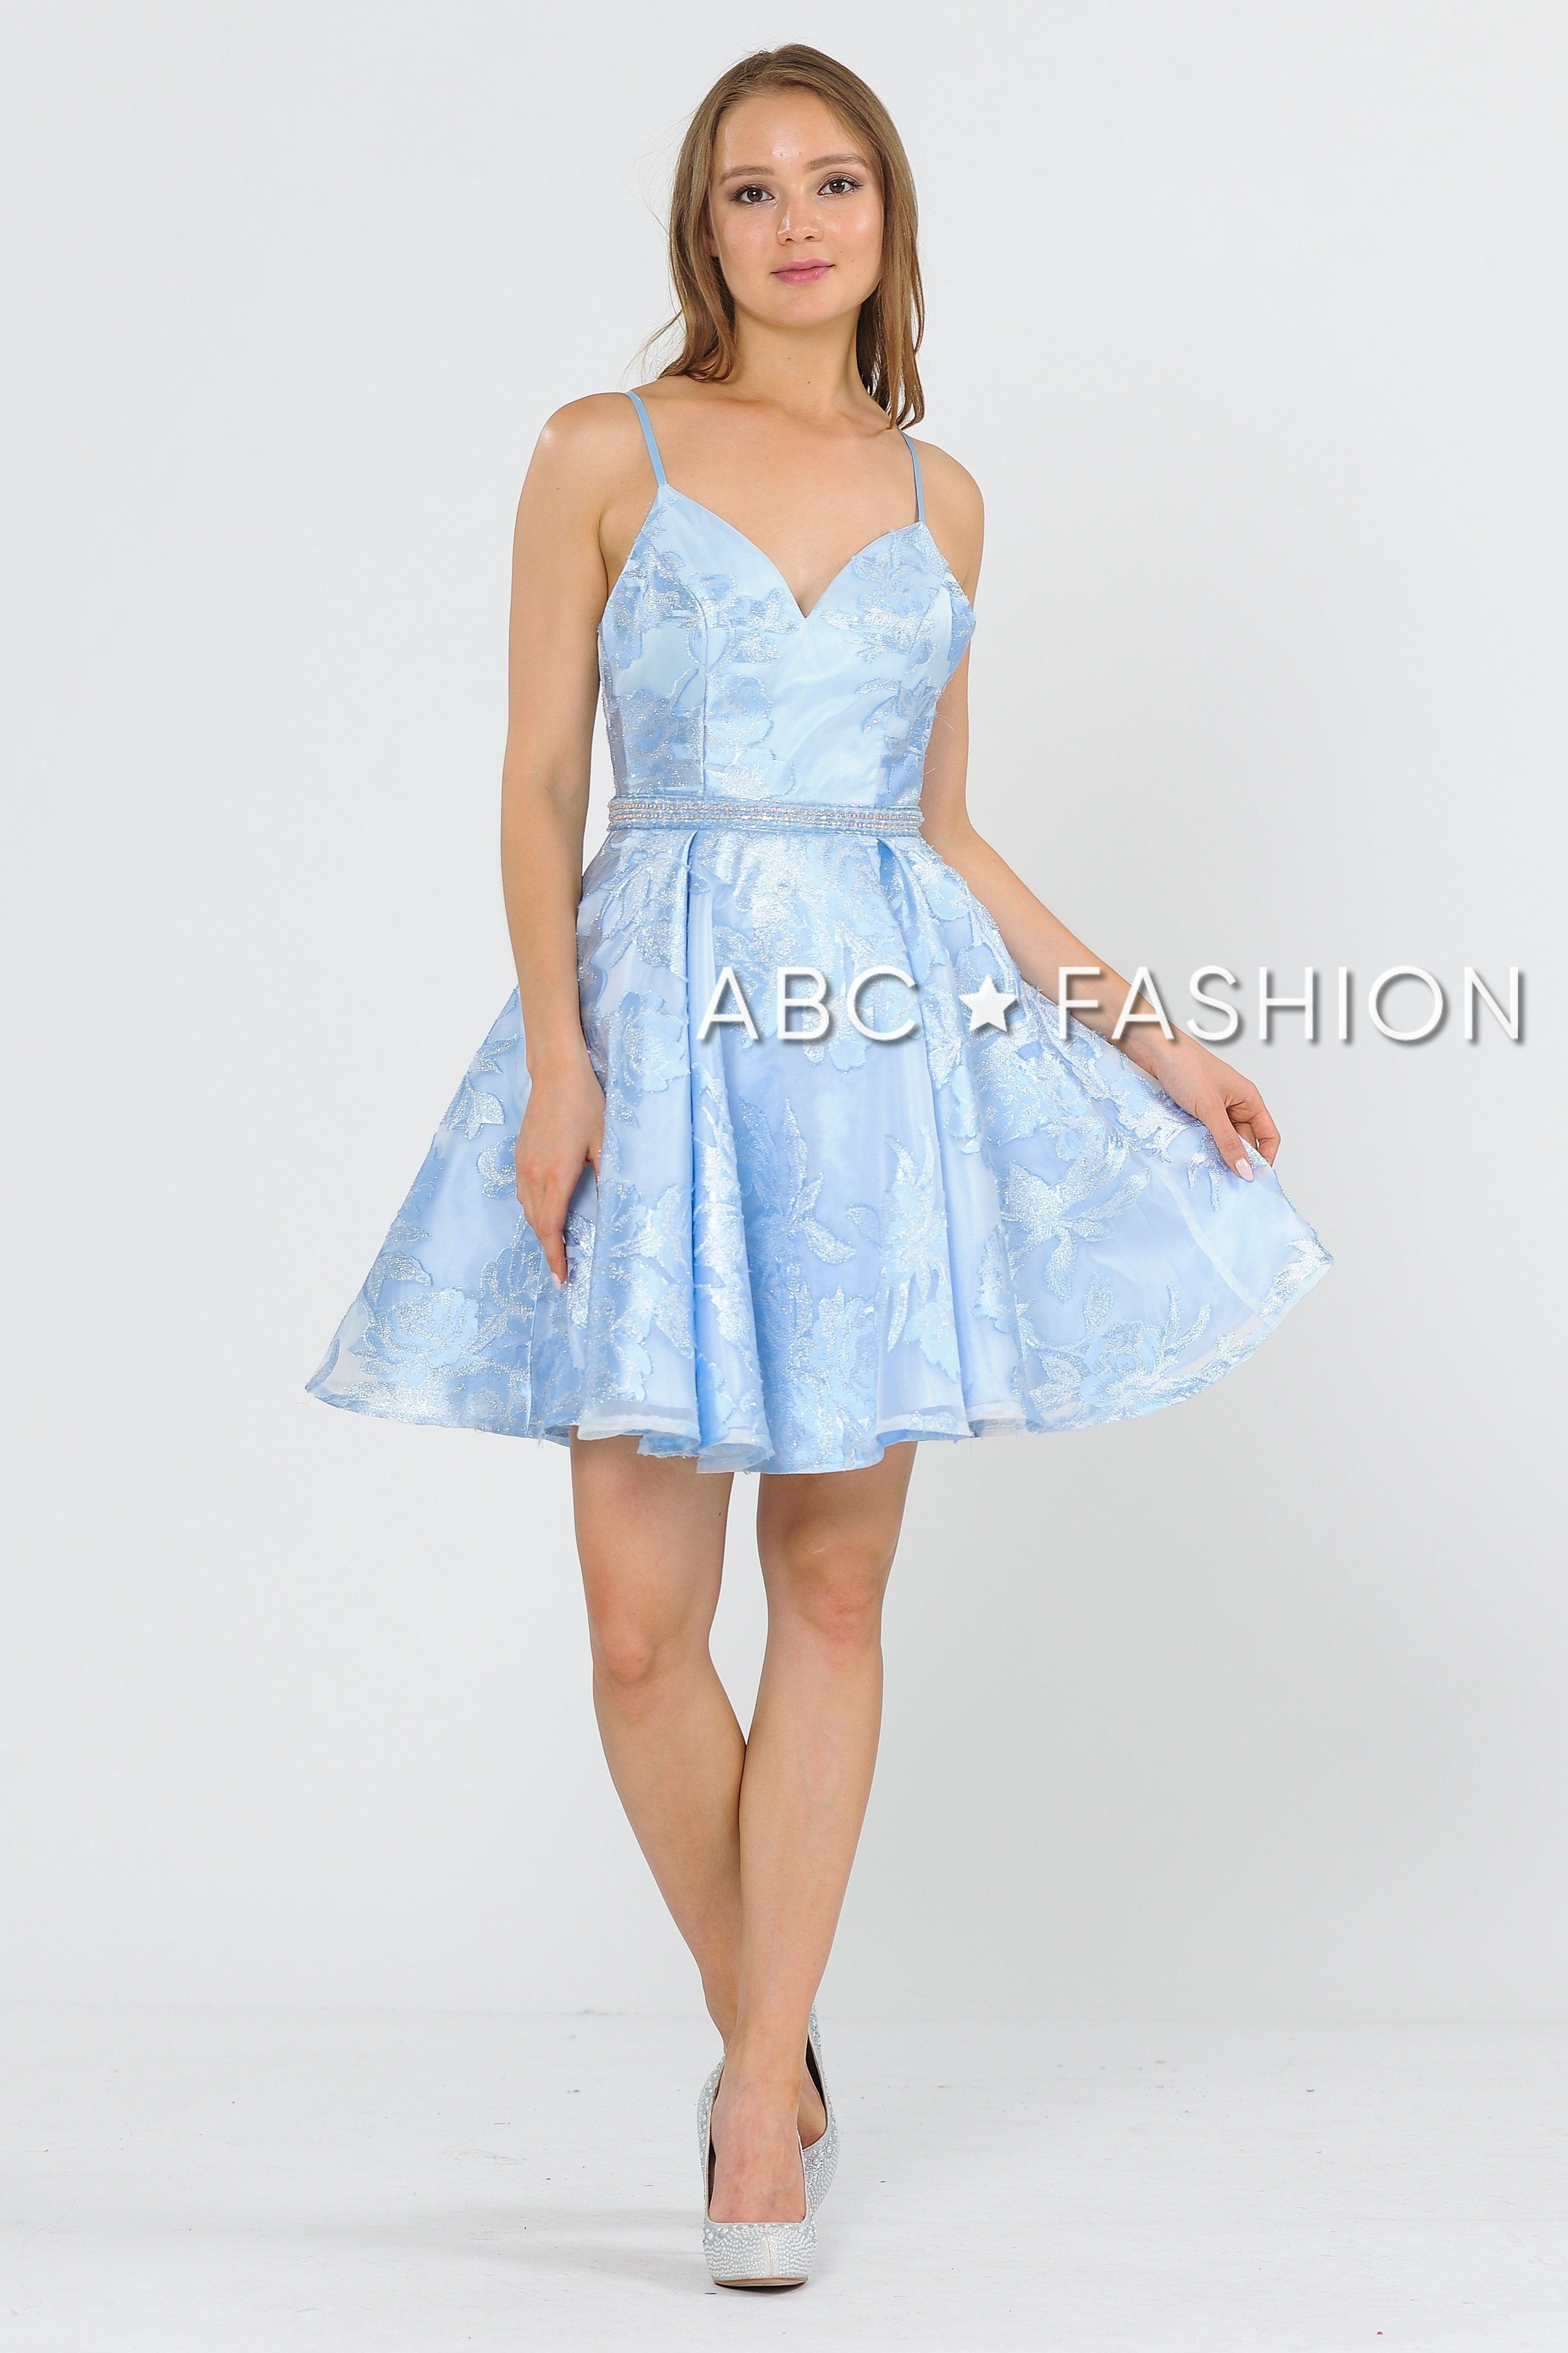 Short Glitter Print Dress With Beaded Waist By Poly Usa 8422 In 2021 Prom Dresses Short Blue A Line Cocktail Dress Cute Prom Dresses [ 3992 x 2661 Pixel ]